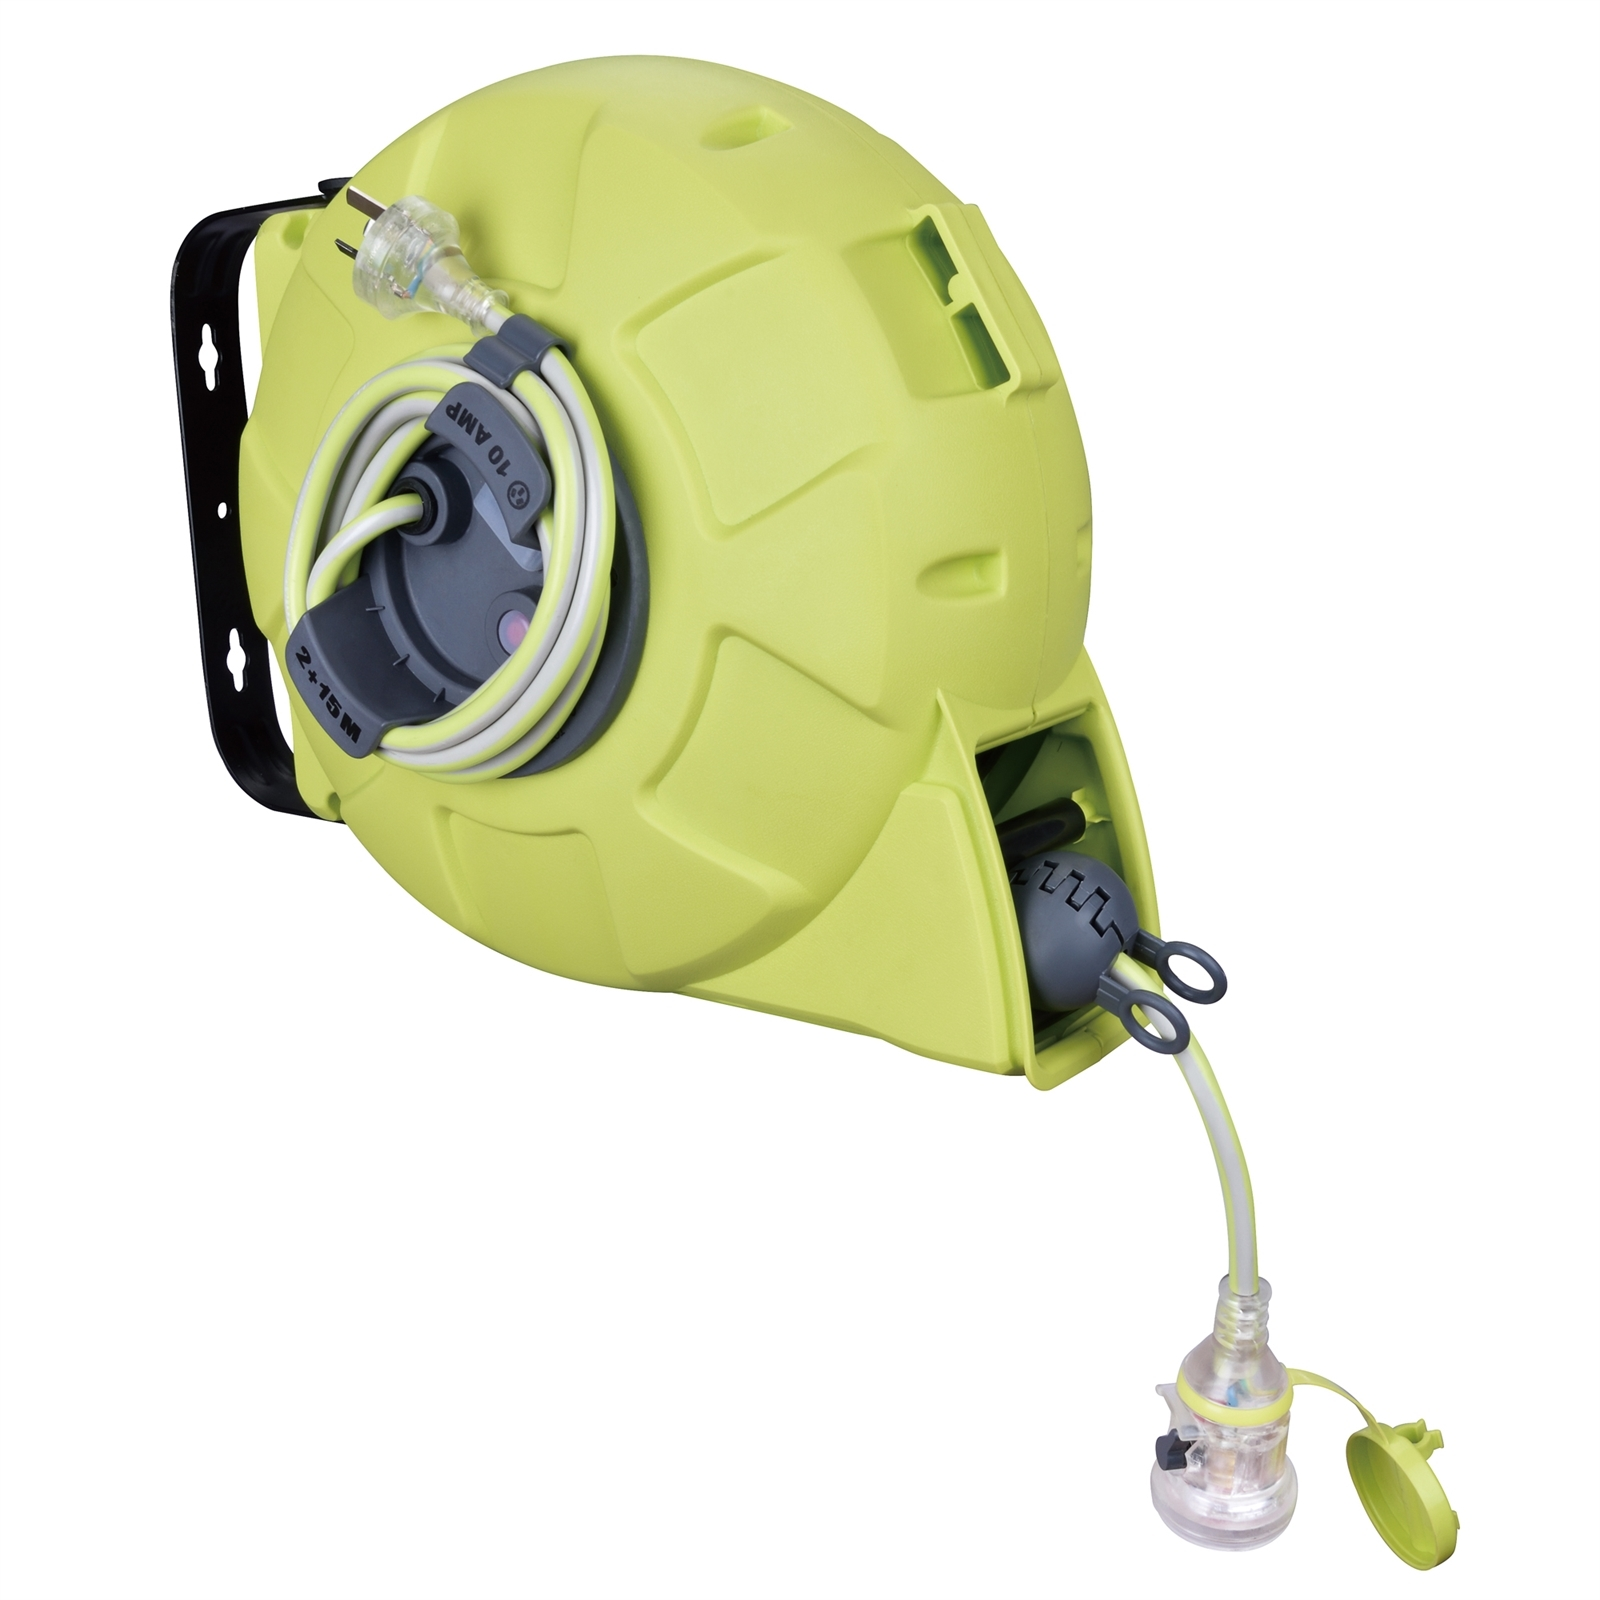 CordTech 17m Retractable Cable Reel With Lock-On Socket